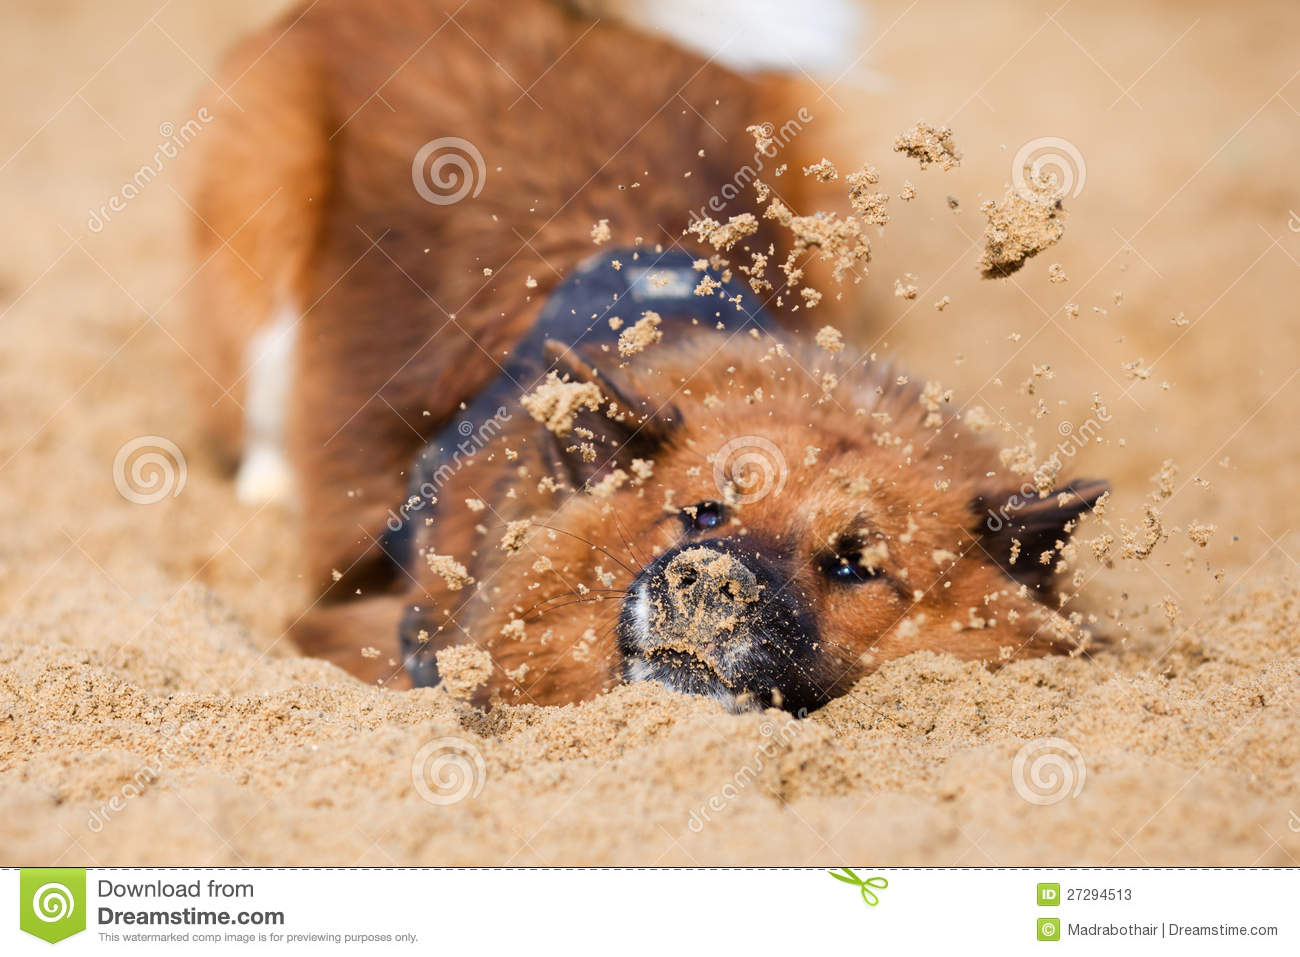 elo hund der mit dem sand spielt stockfotos bild 27294513. Black Bedroom Furniture Sets. Home Design Ideas